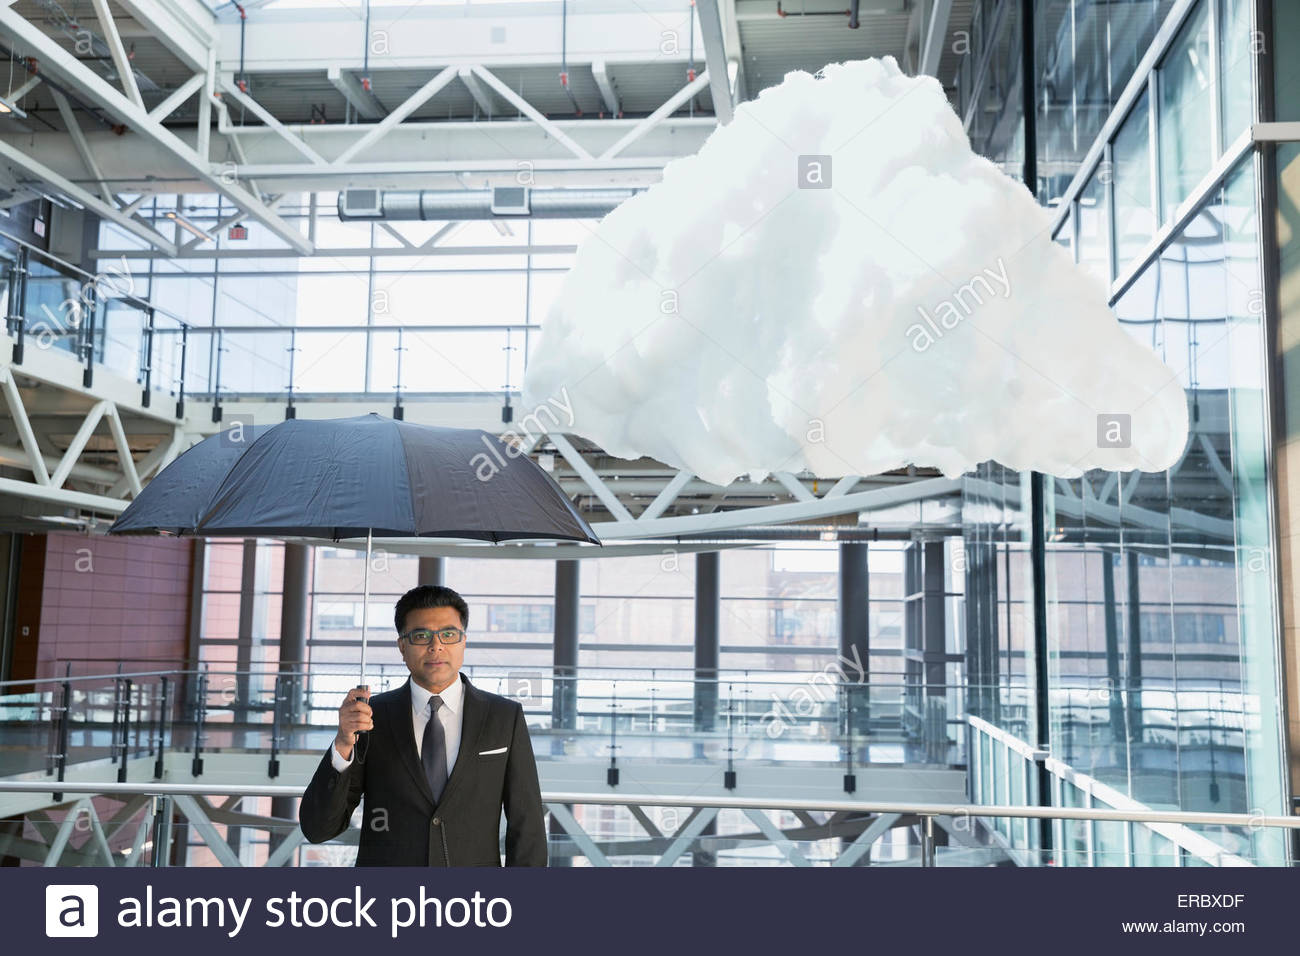 Portrait businessman with umbrella under cloud in atrium - Stock Image